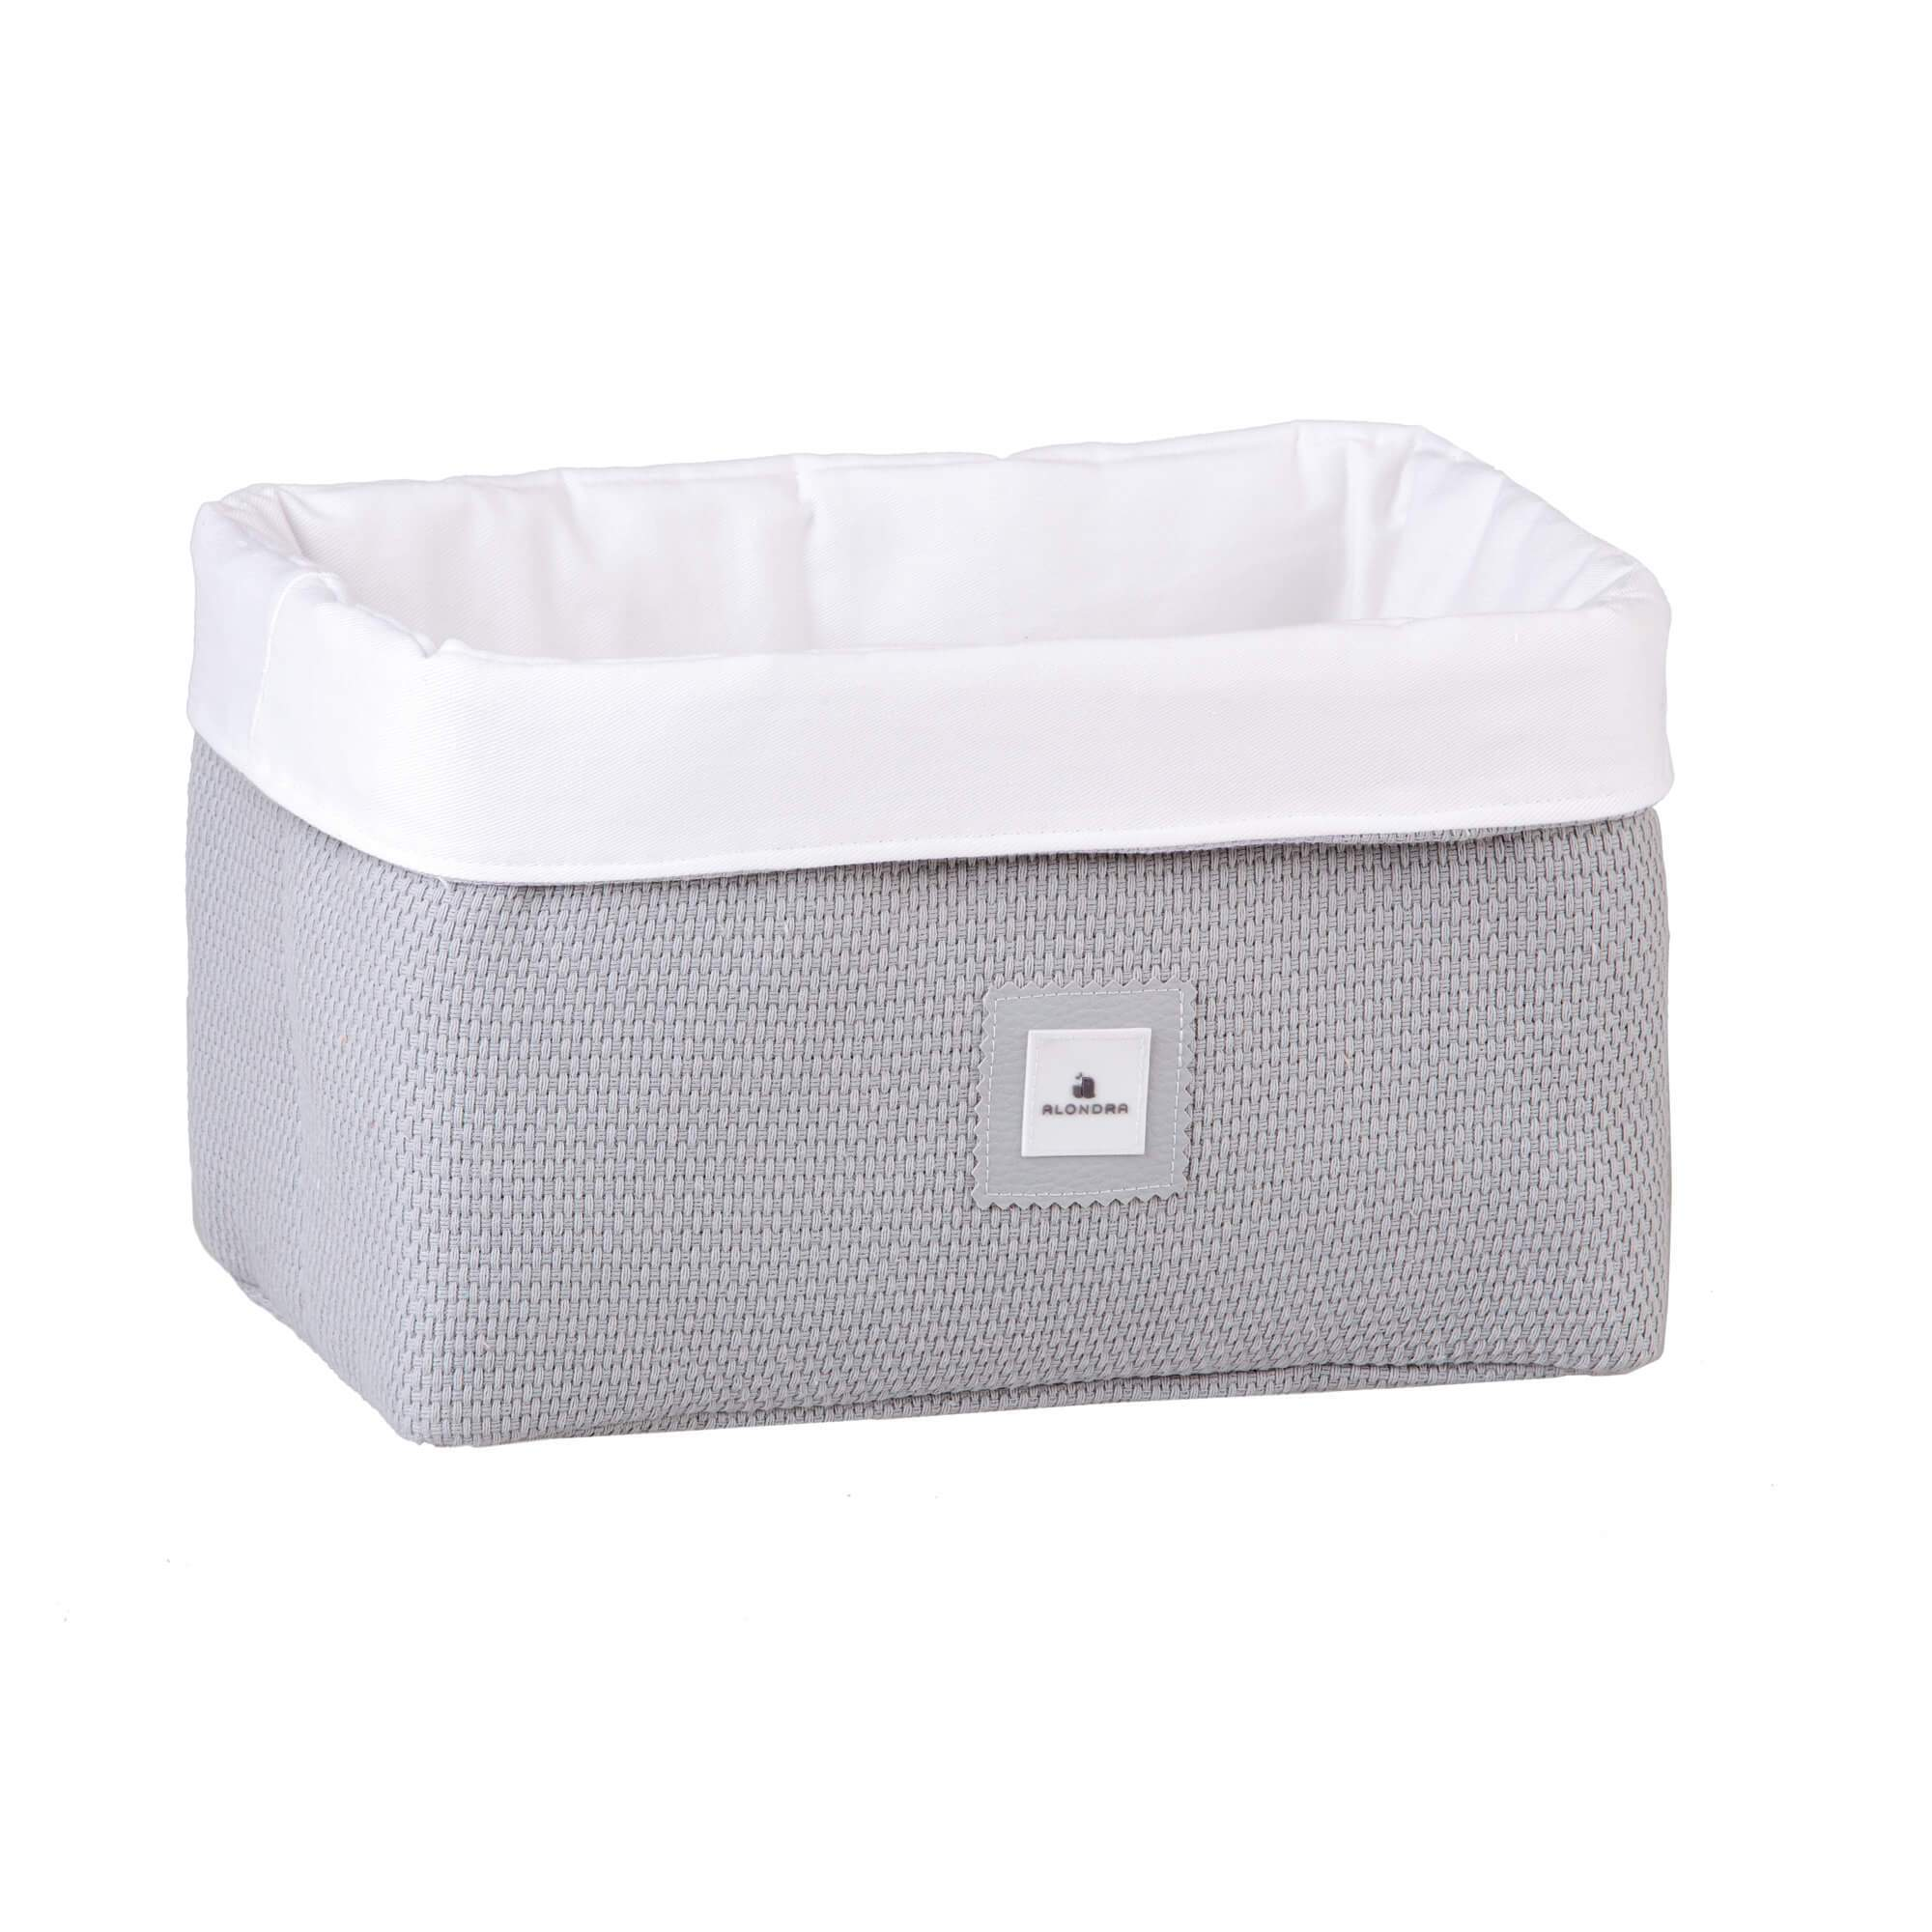 Alondra Padded Baby Basket - Grey Knit